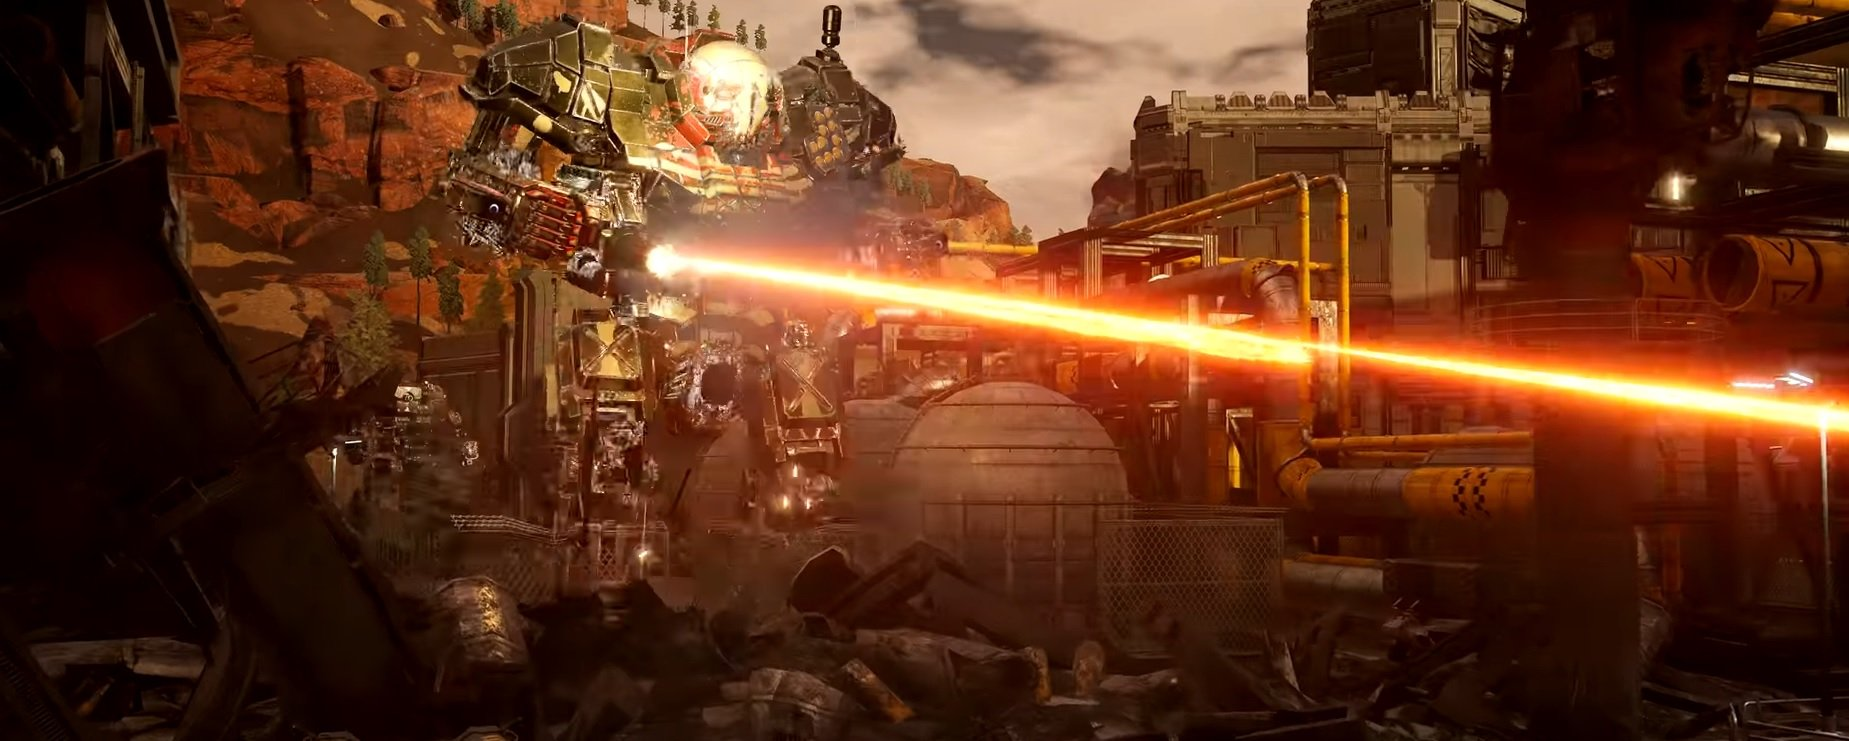 MechWarrior 5 is getting novellas leading up to its launch, as well as new footage screenshot